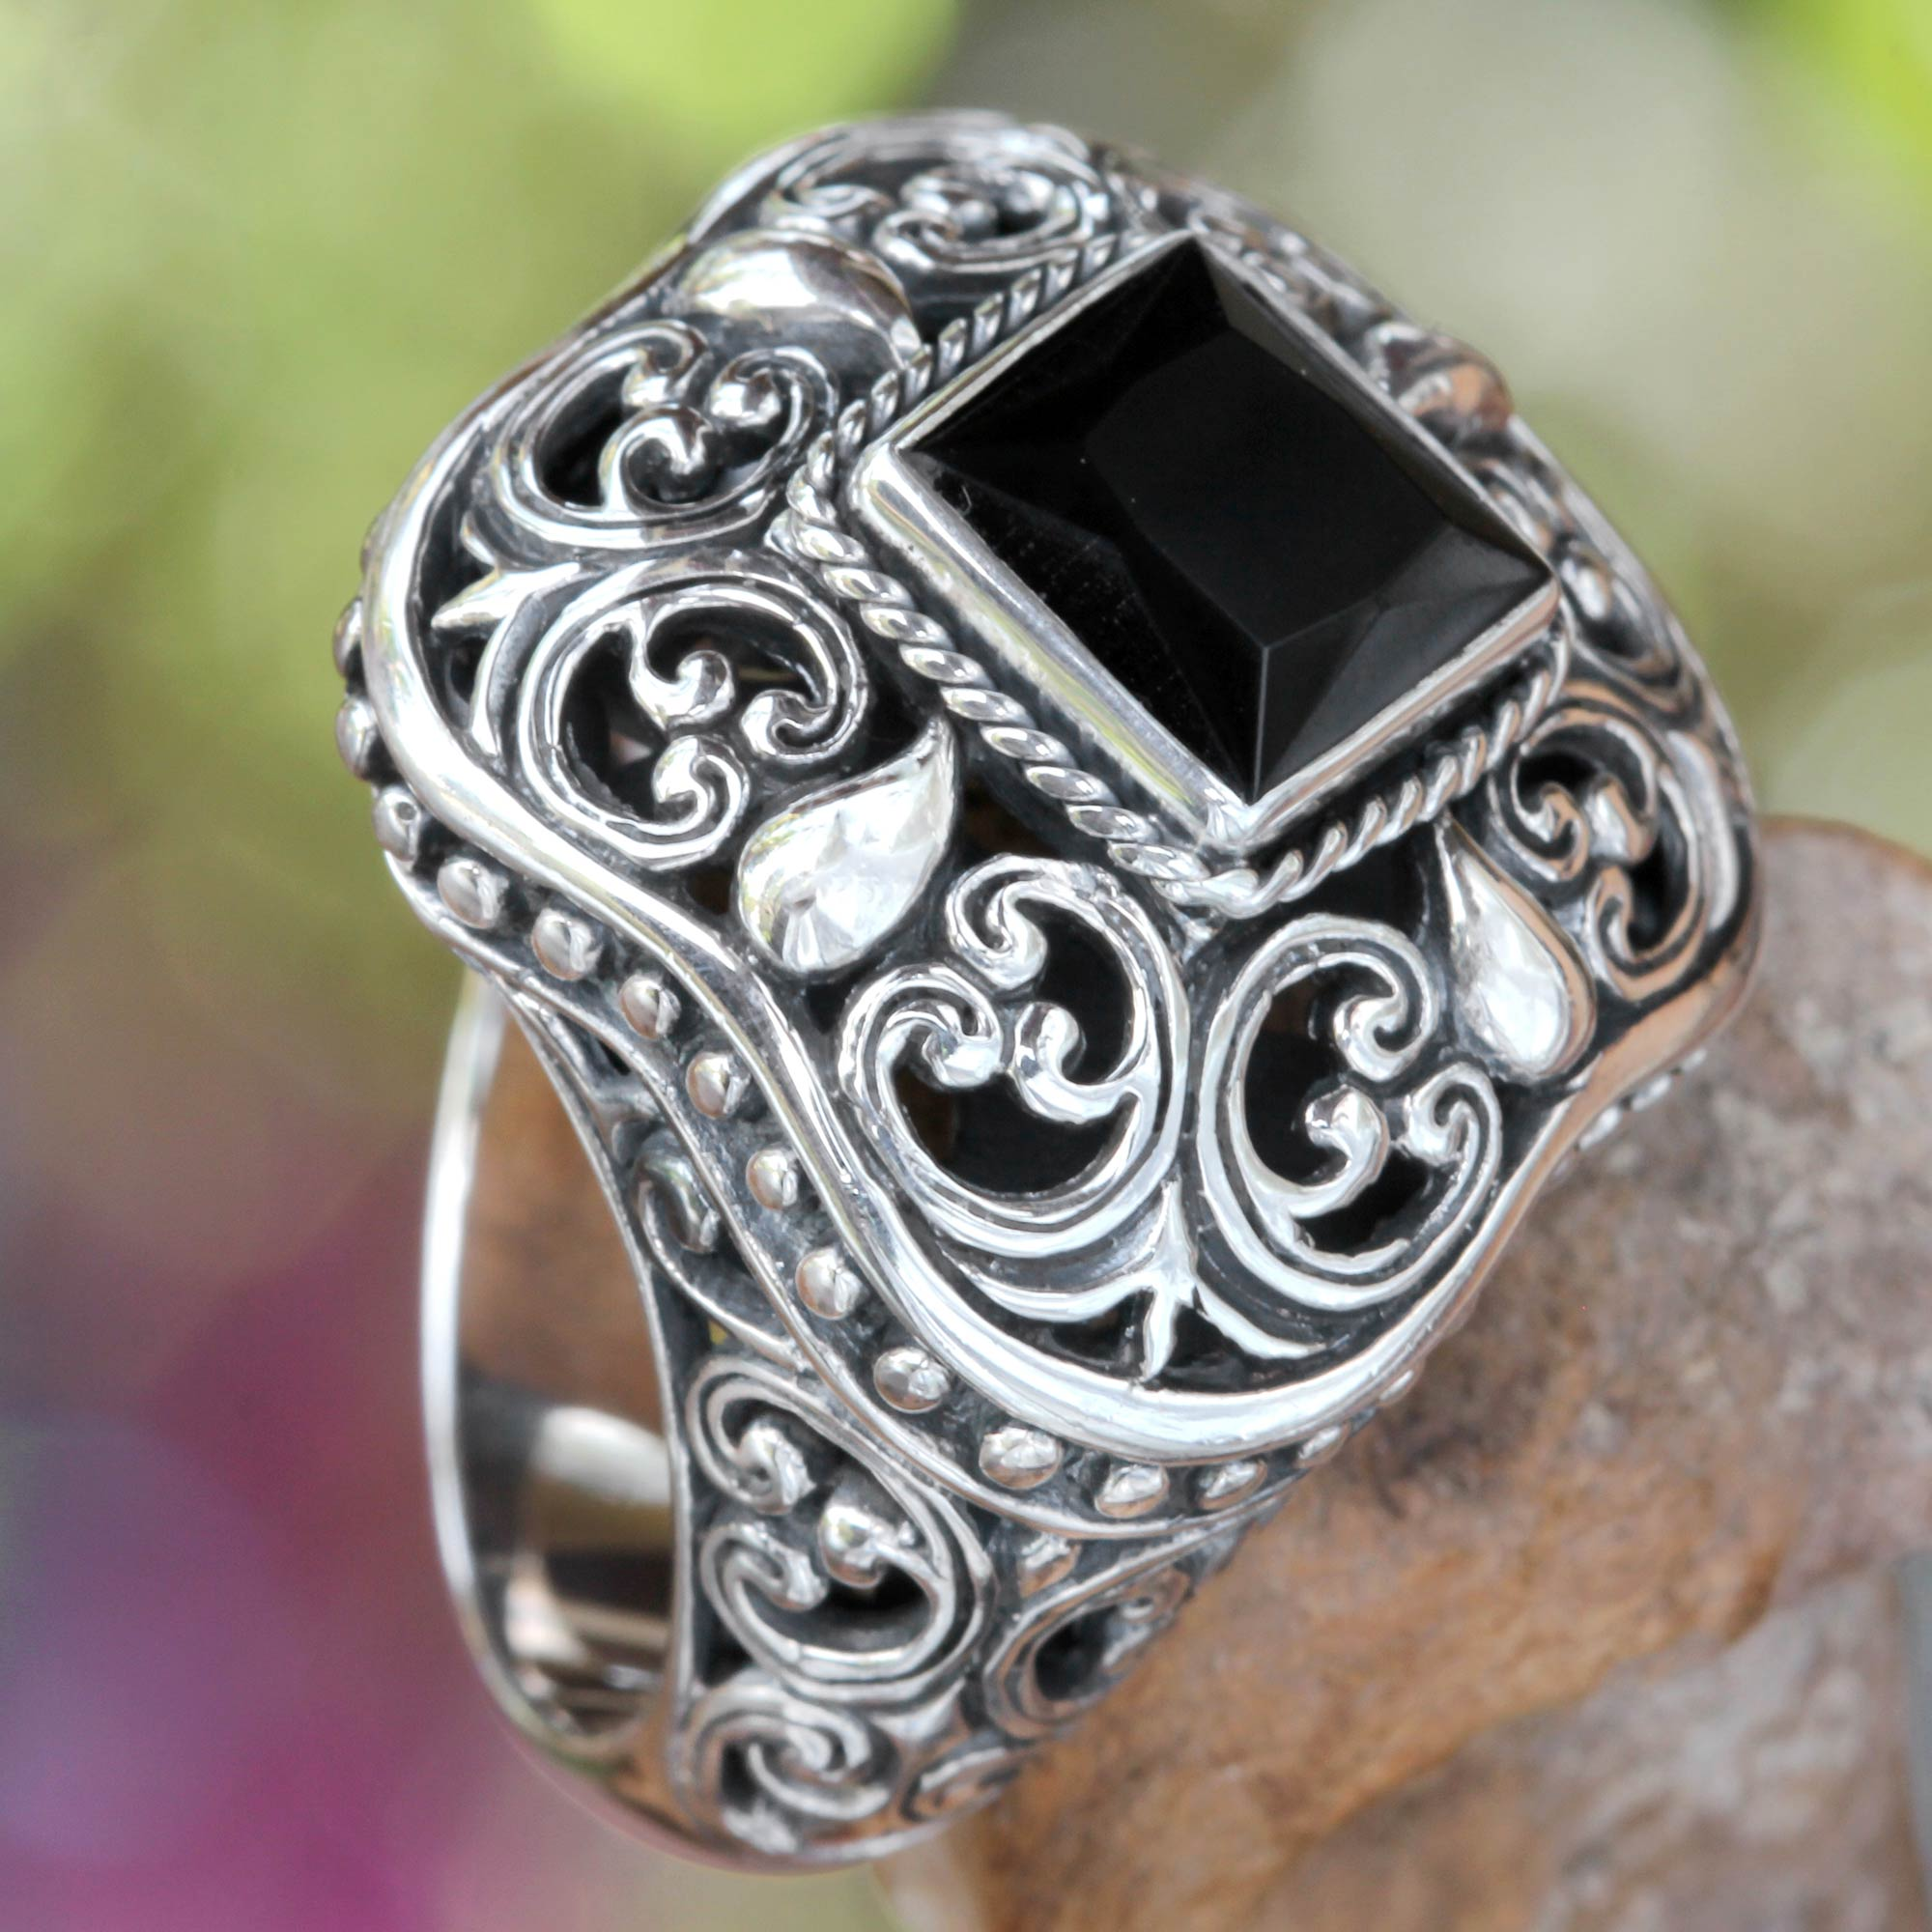 inspirational rings the promise engagement awesome gothic pinterest of wedding on about review ring great goth best ideas